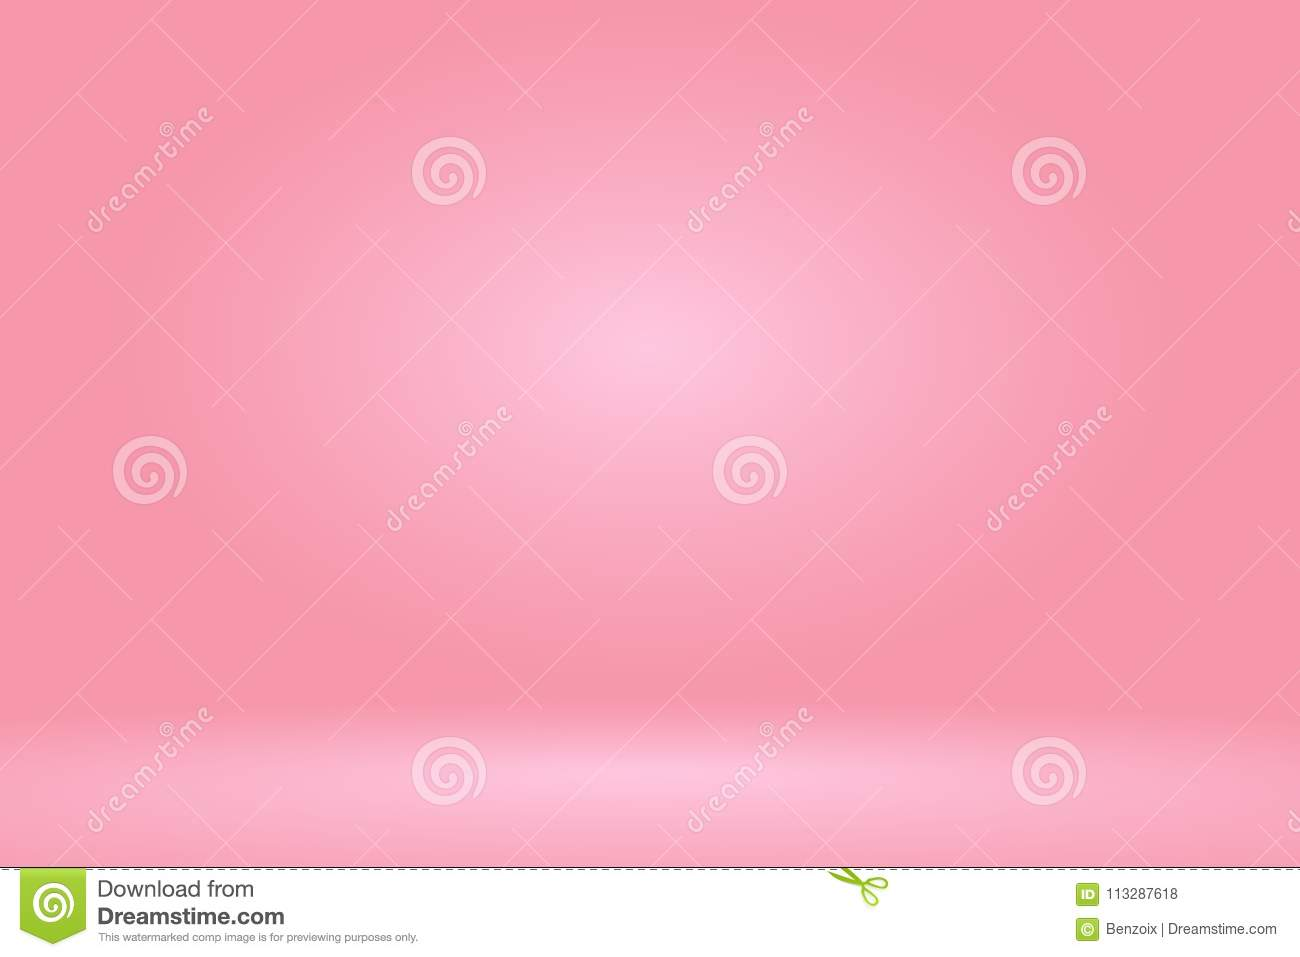 Vector :Empty pastel peach studio room background ,Template mock up for display of product,Business backdrop